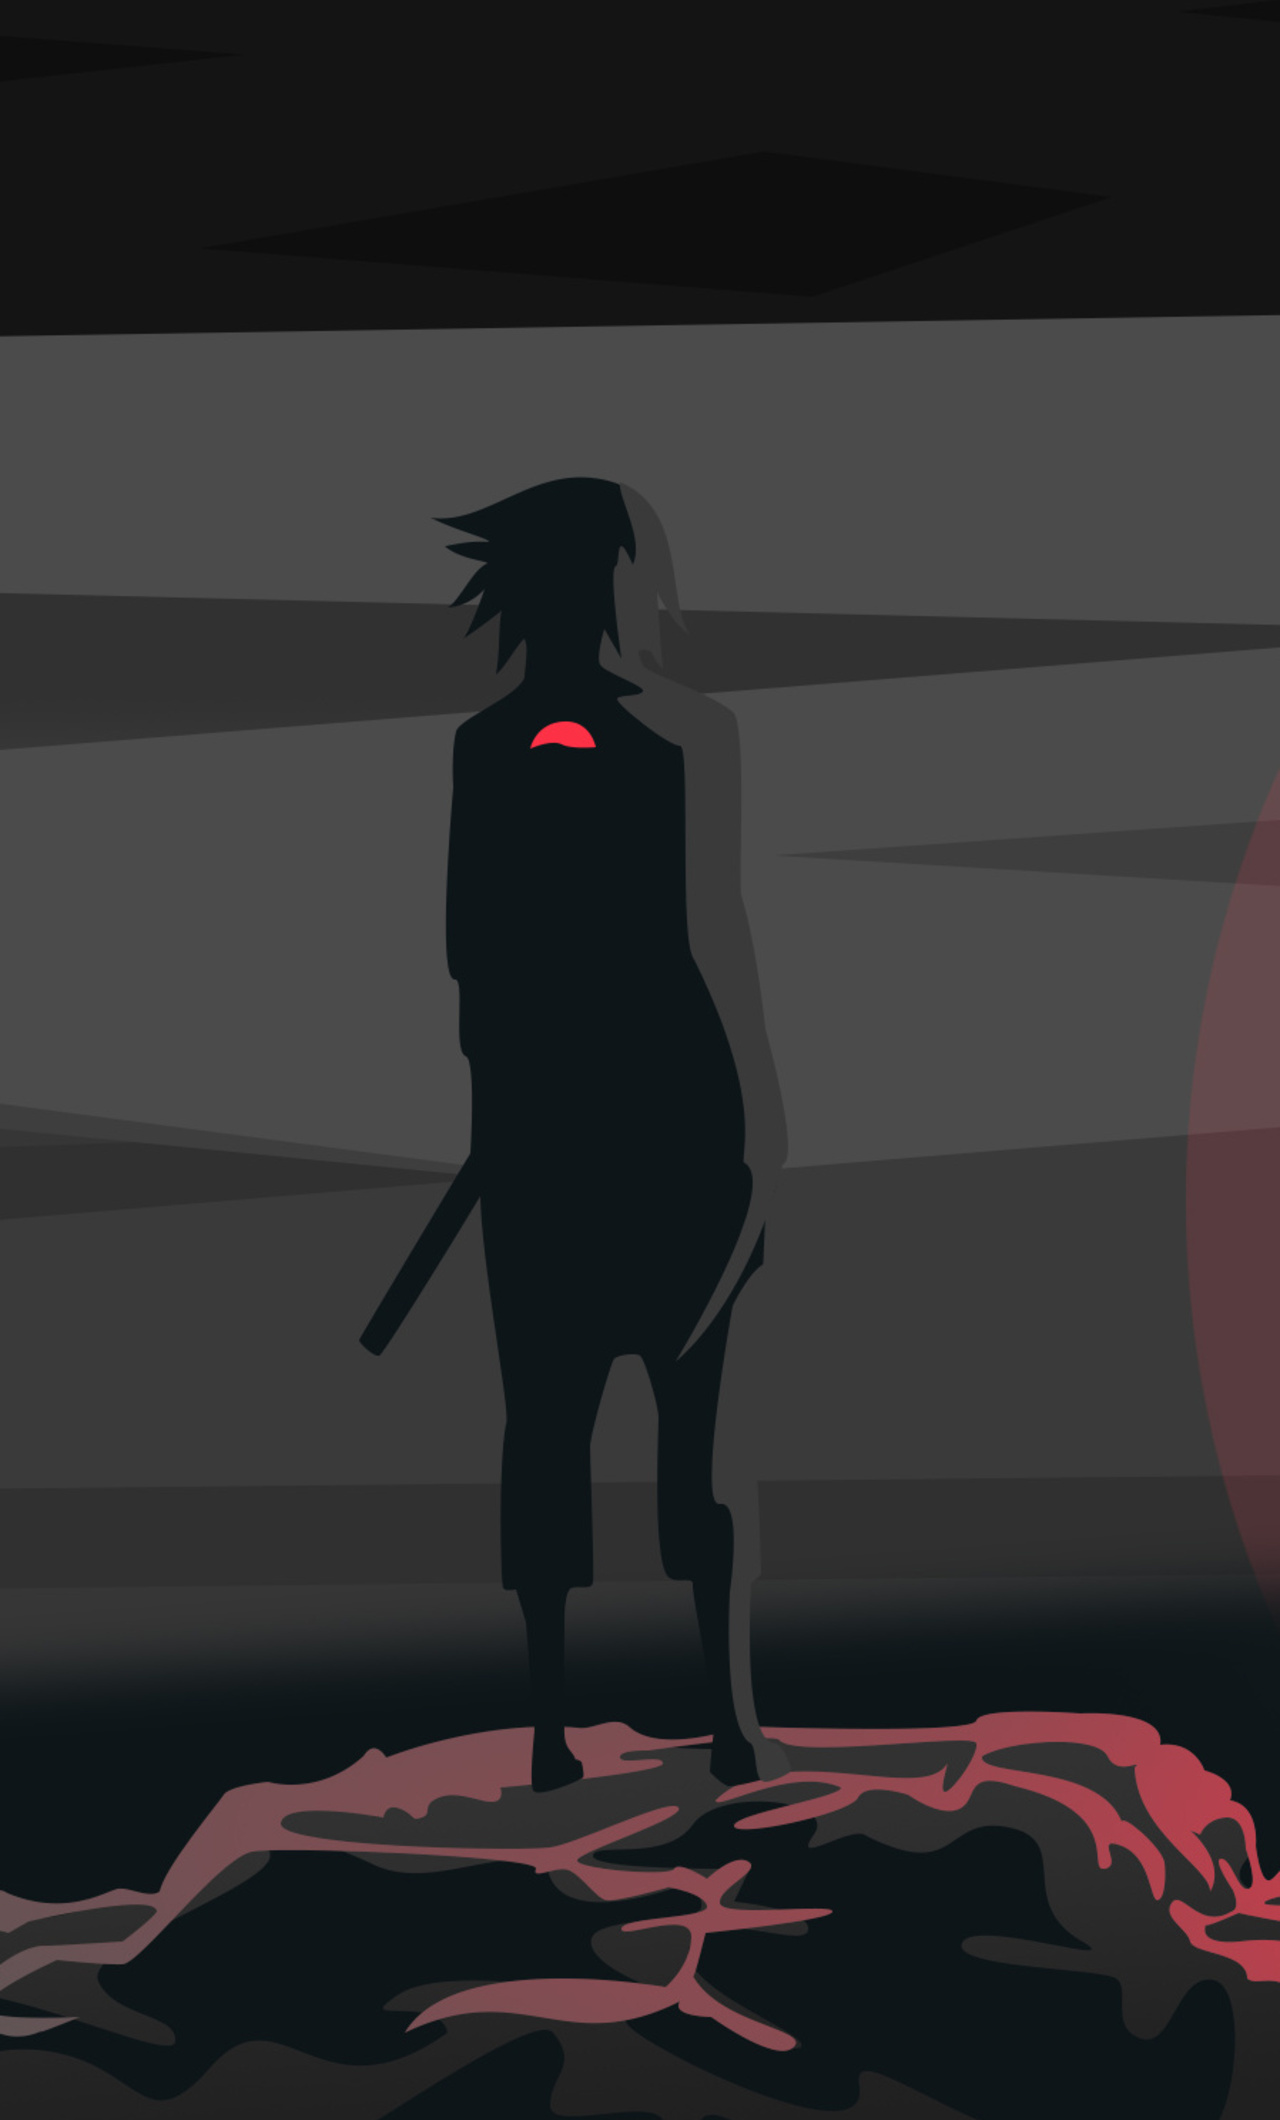 1280x2120 Uchiha Sasuke Naruto Iphone 6 Hd 4k Wallpapers Images